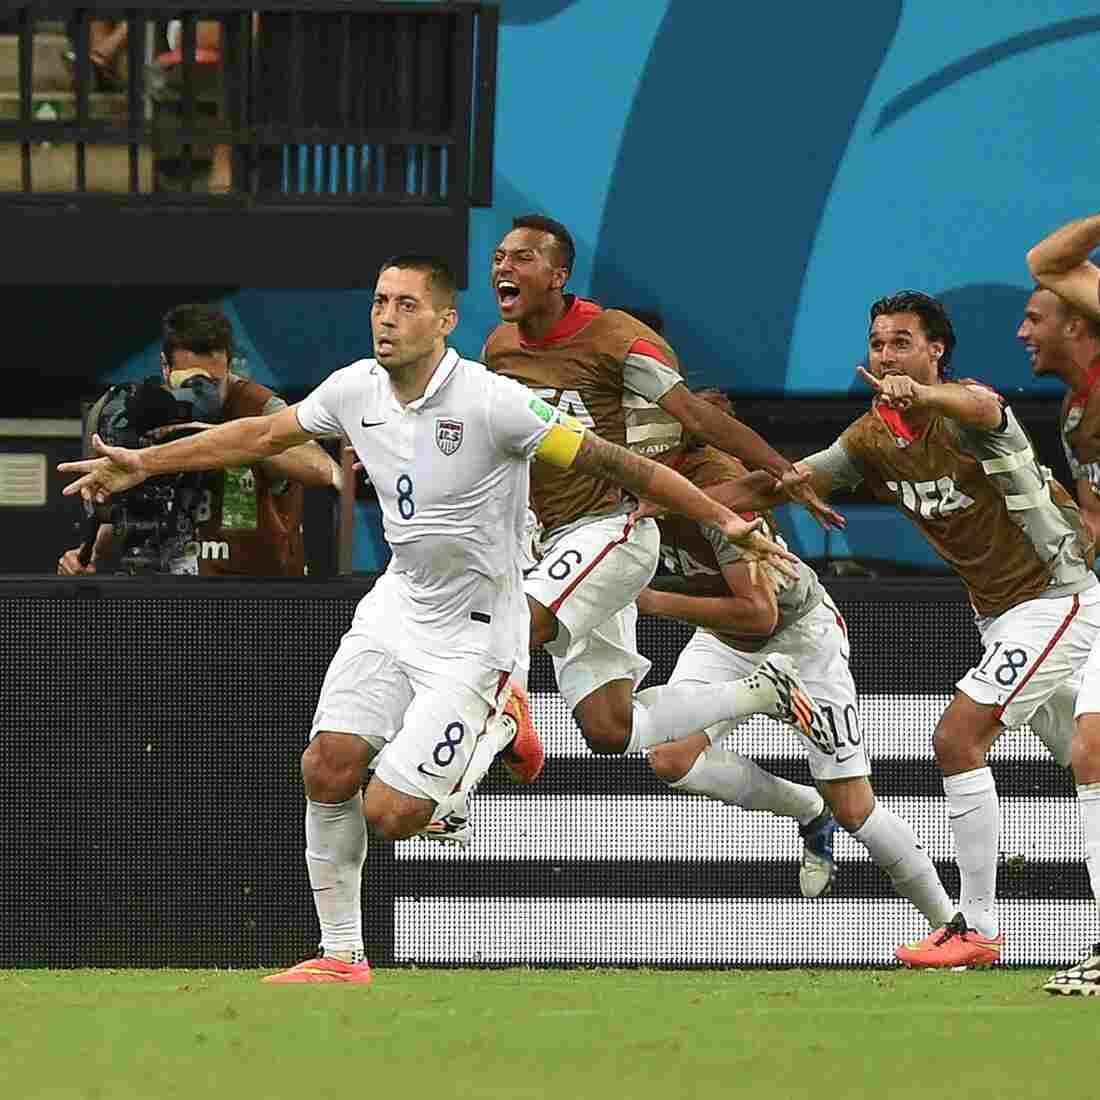 U.S. forward Clint Dempsey (8) celebrates after scoring his team's second goal during a match against Portugal at the Amazonia Arena in Manaus on Sunday.